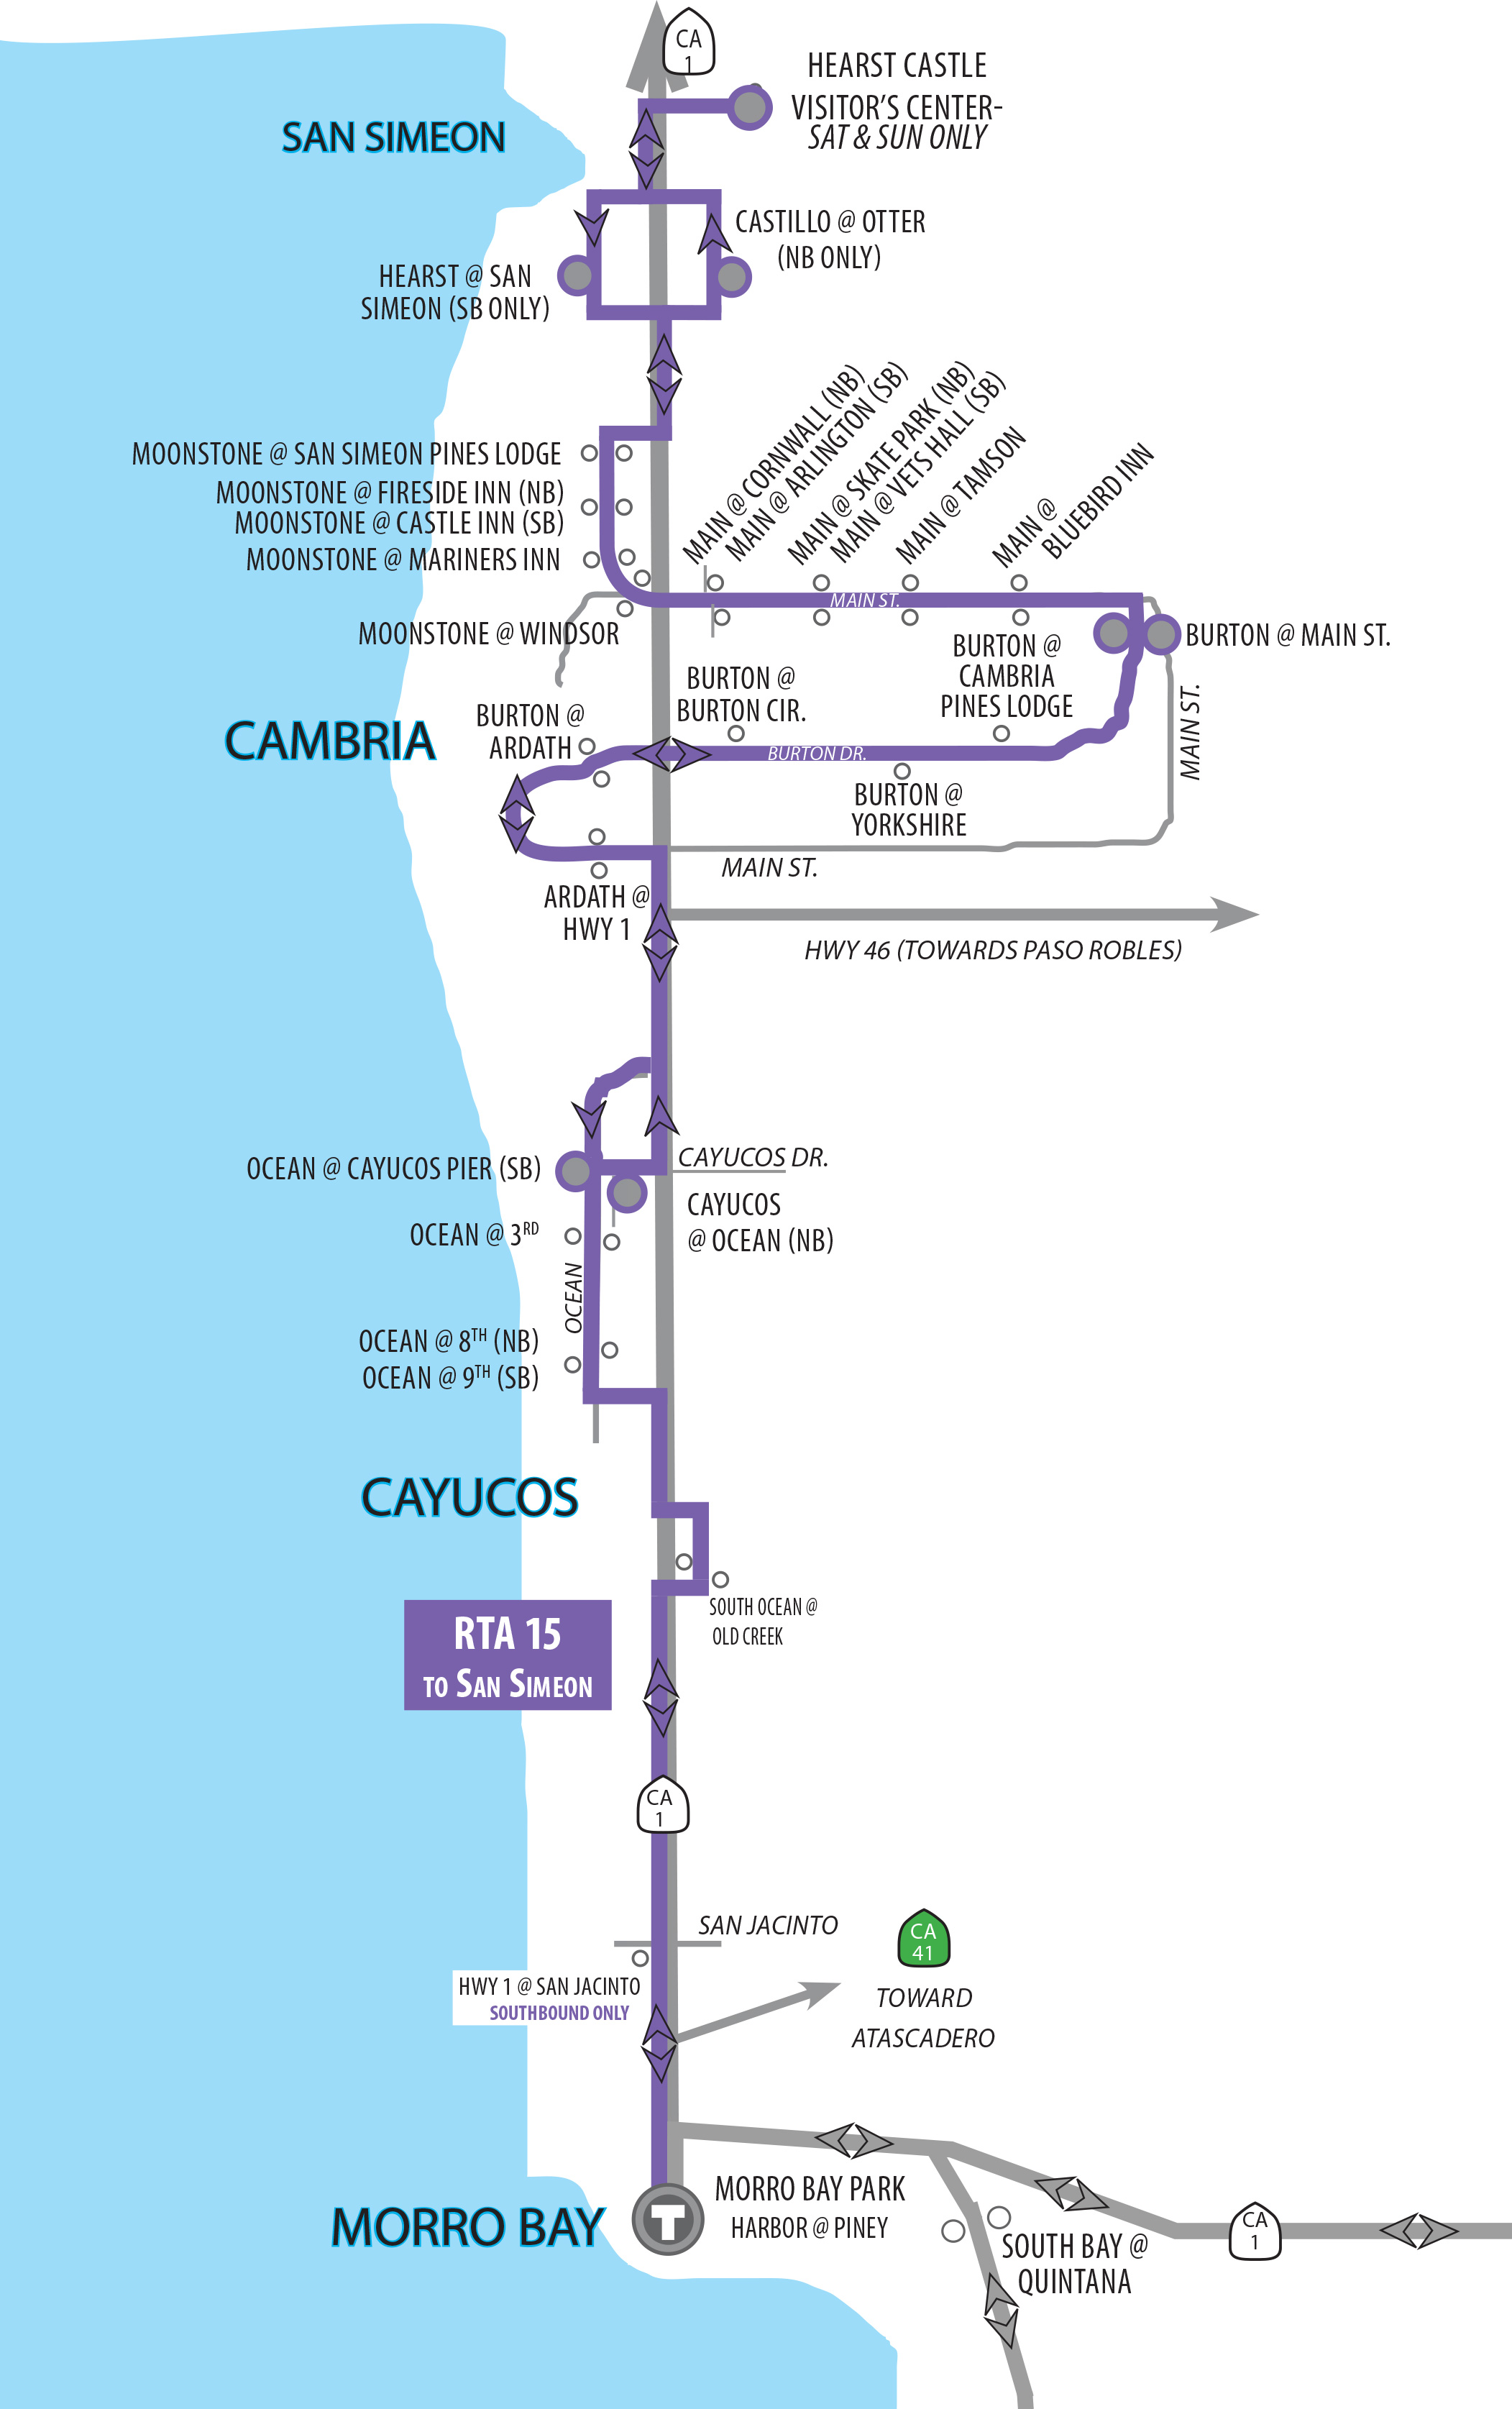 Route 15 Morro Bay, Cayucos, Cambria, San Simeon. NEW! Cayucos-Morro on massachusetts bay transit authority map, central of georgia map, massachusetts bay transportation authority map, go street map, new jersey transit map, toronto ttc map, subway transit map, go train mississauga map, norfolk southern map, sound transit map, metro transit map, toronto streetcar system map, peterborough transit map, calgary transit map, vaughan transit map, toronto transit map, nj transit map, metropolitan atlanta rapid transit authority map, dallas area rapid transit map, bay area rapid transit map,